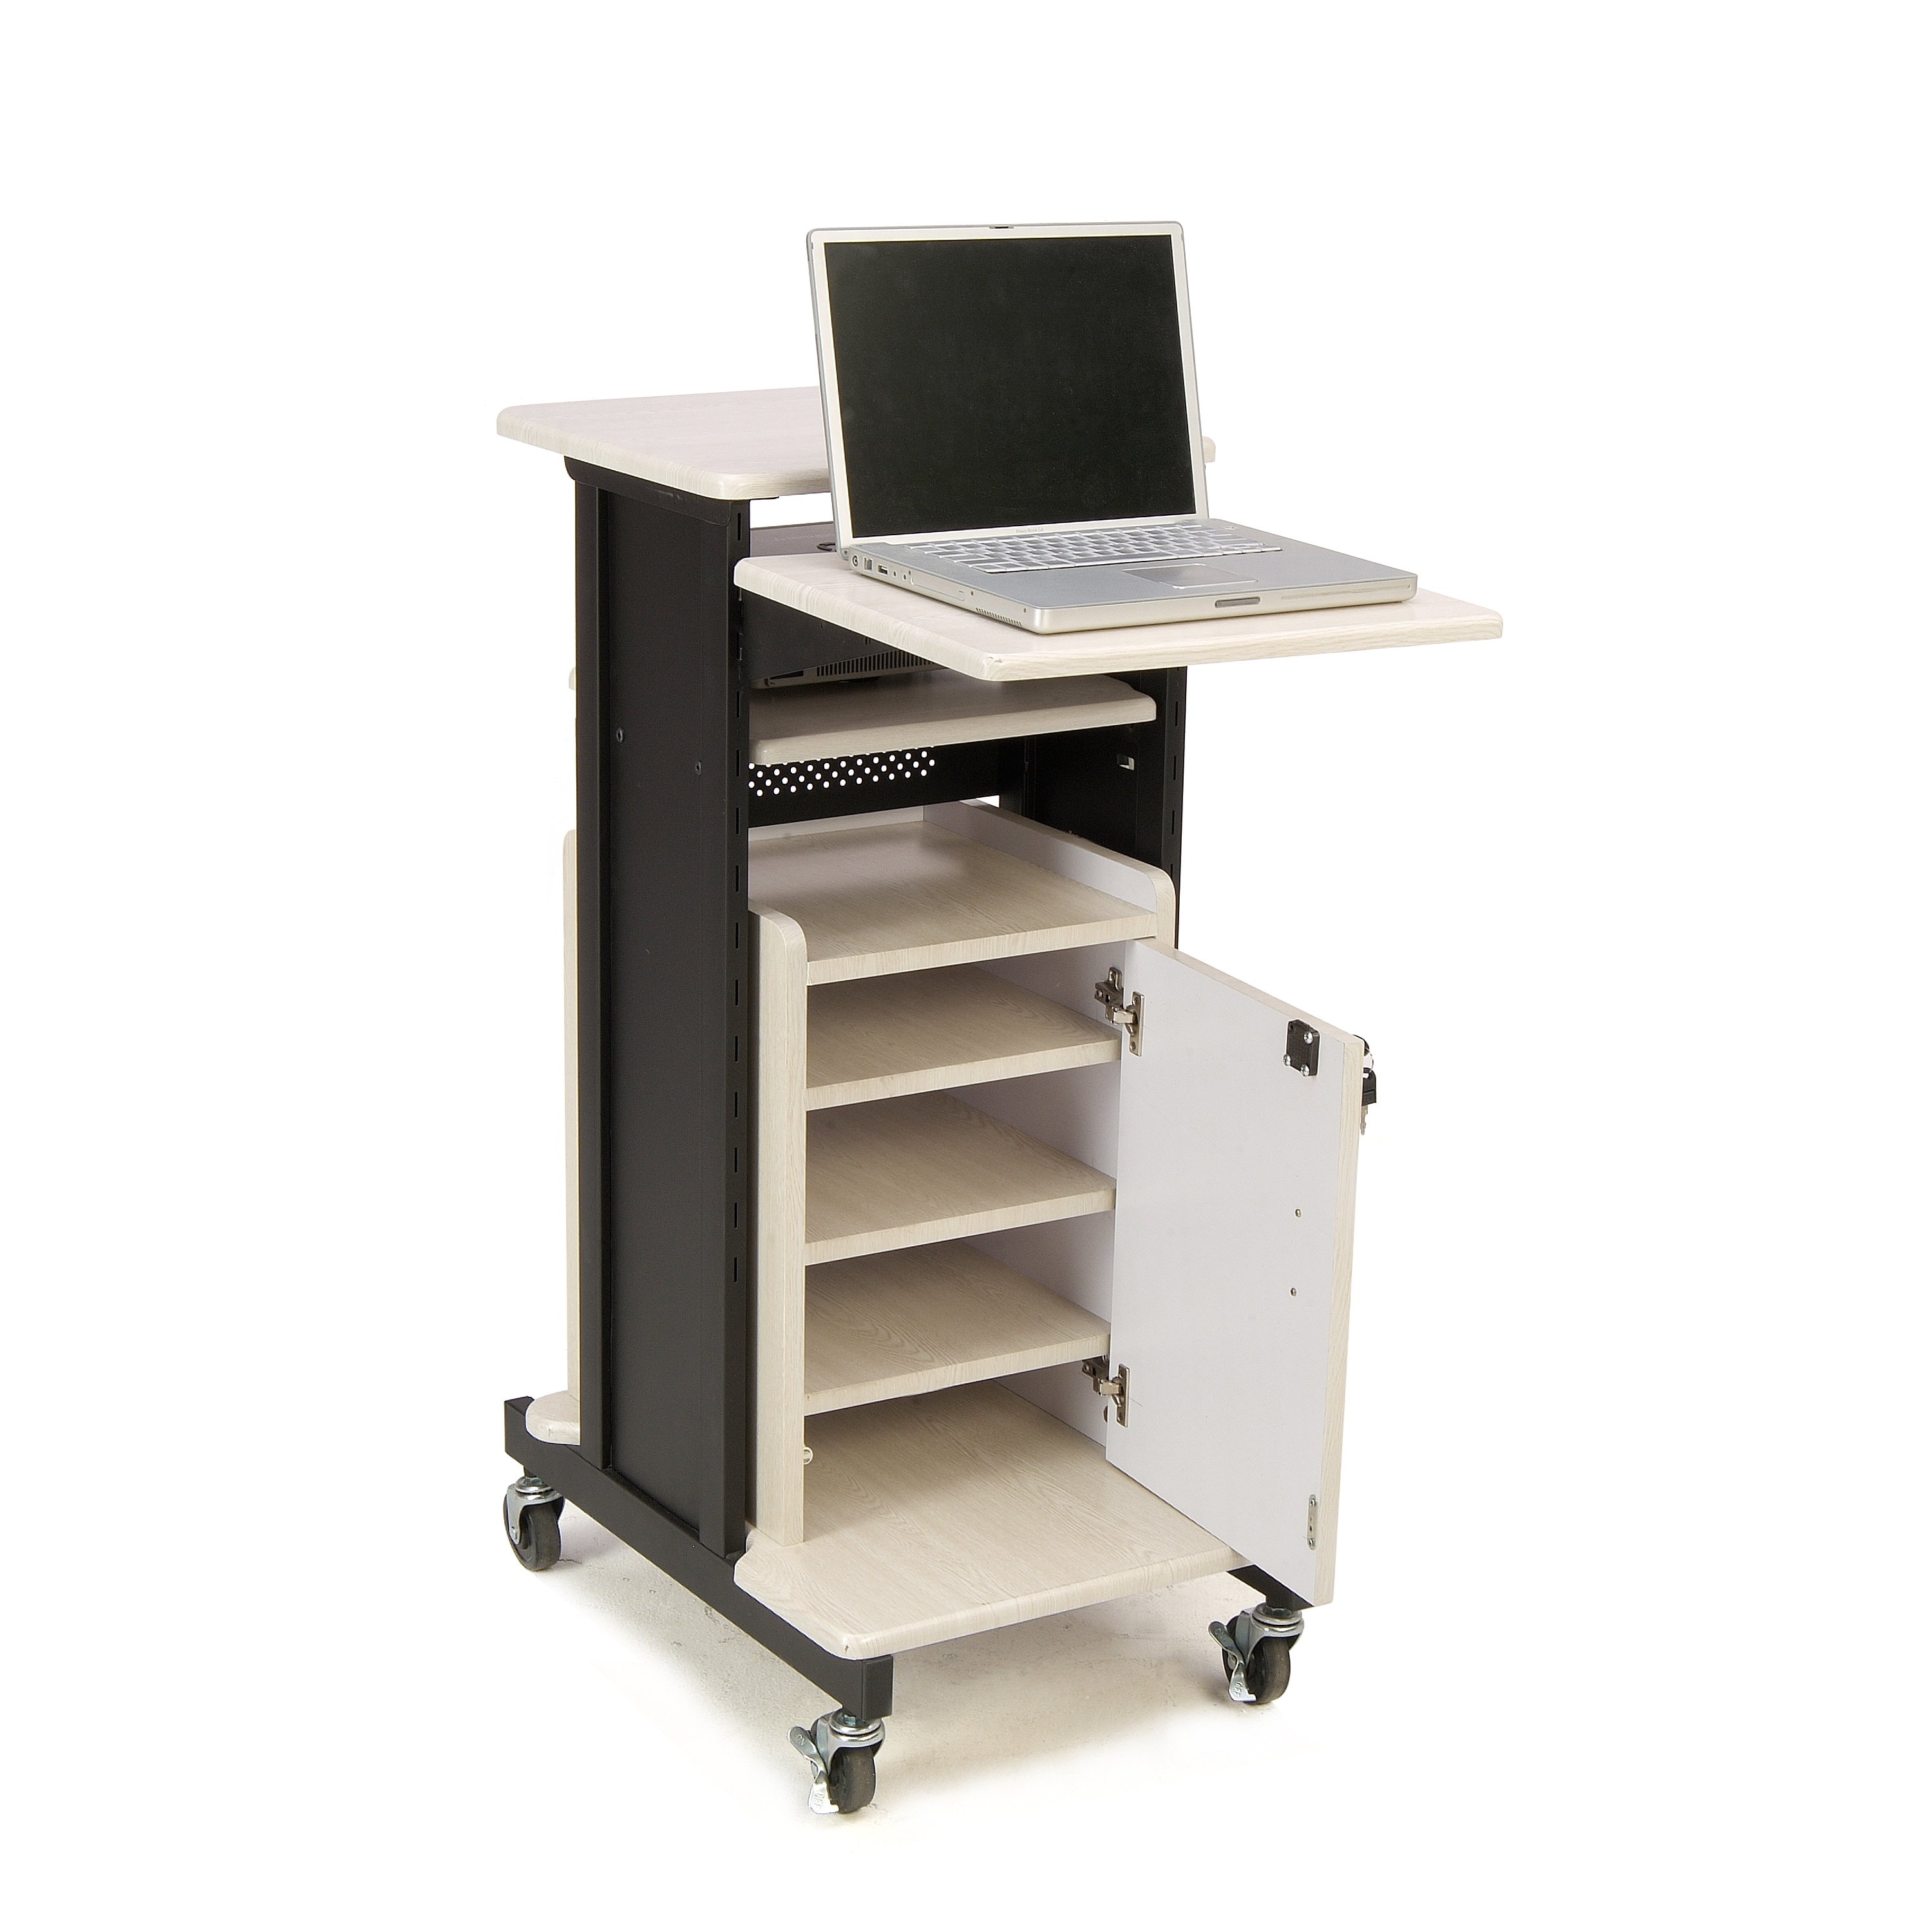 Oklahoma sound corporation Premium Plus Presentation Cart at Sears.com